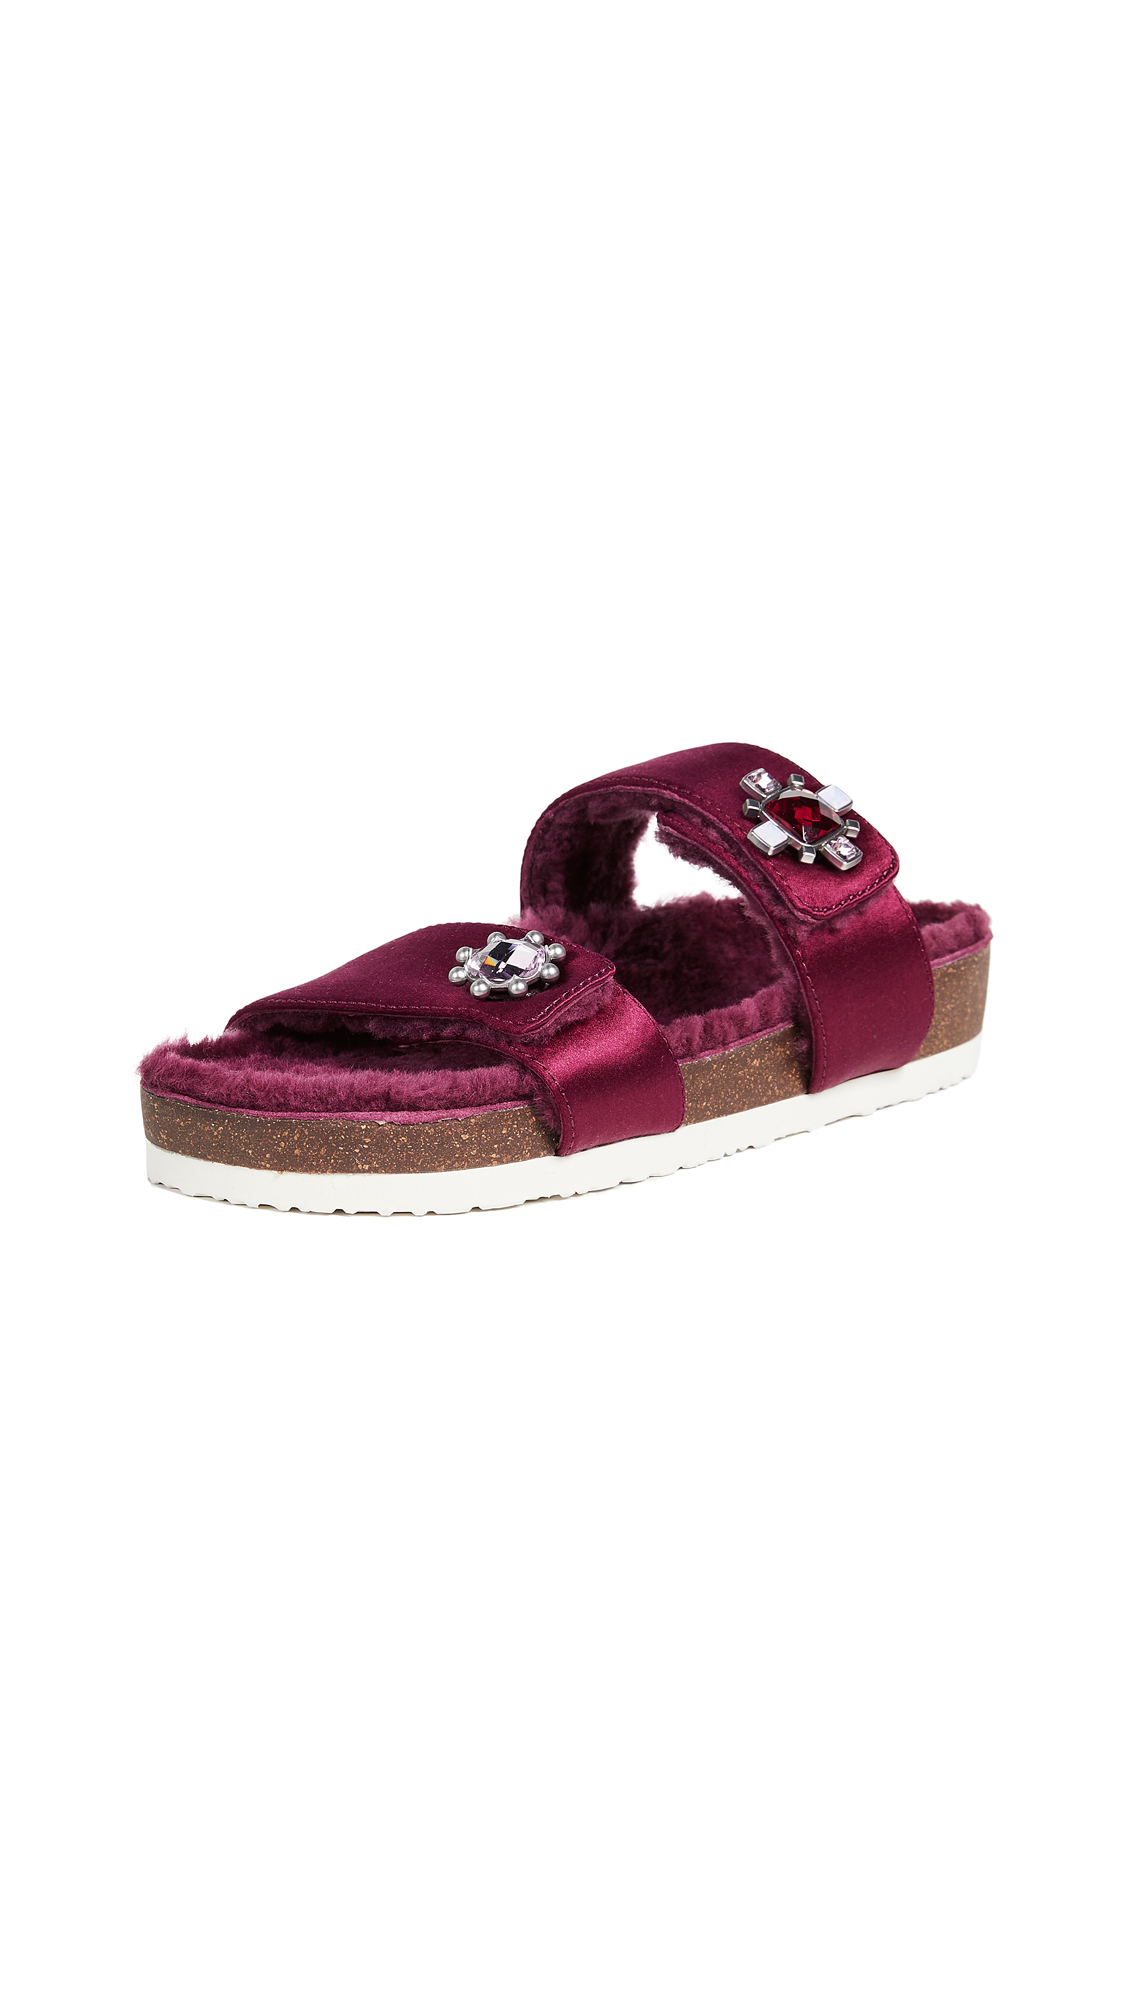 Tory Burch Celia Two Band Sandals - Imperial Garnet